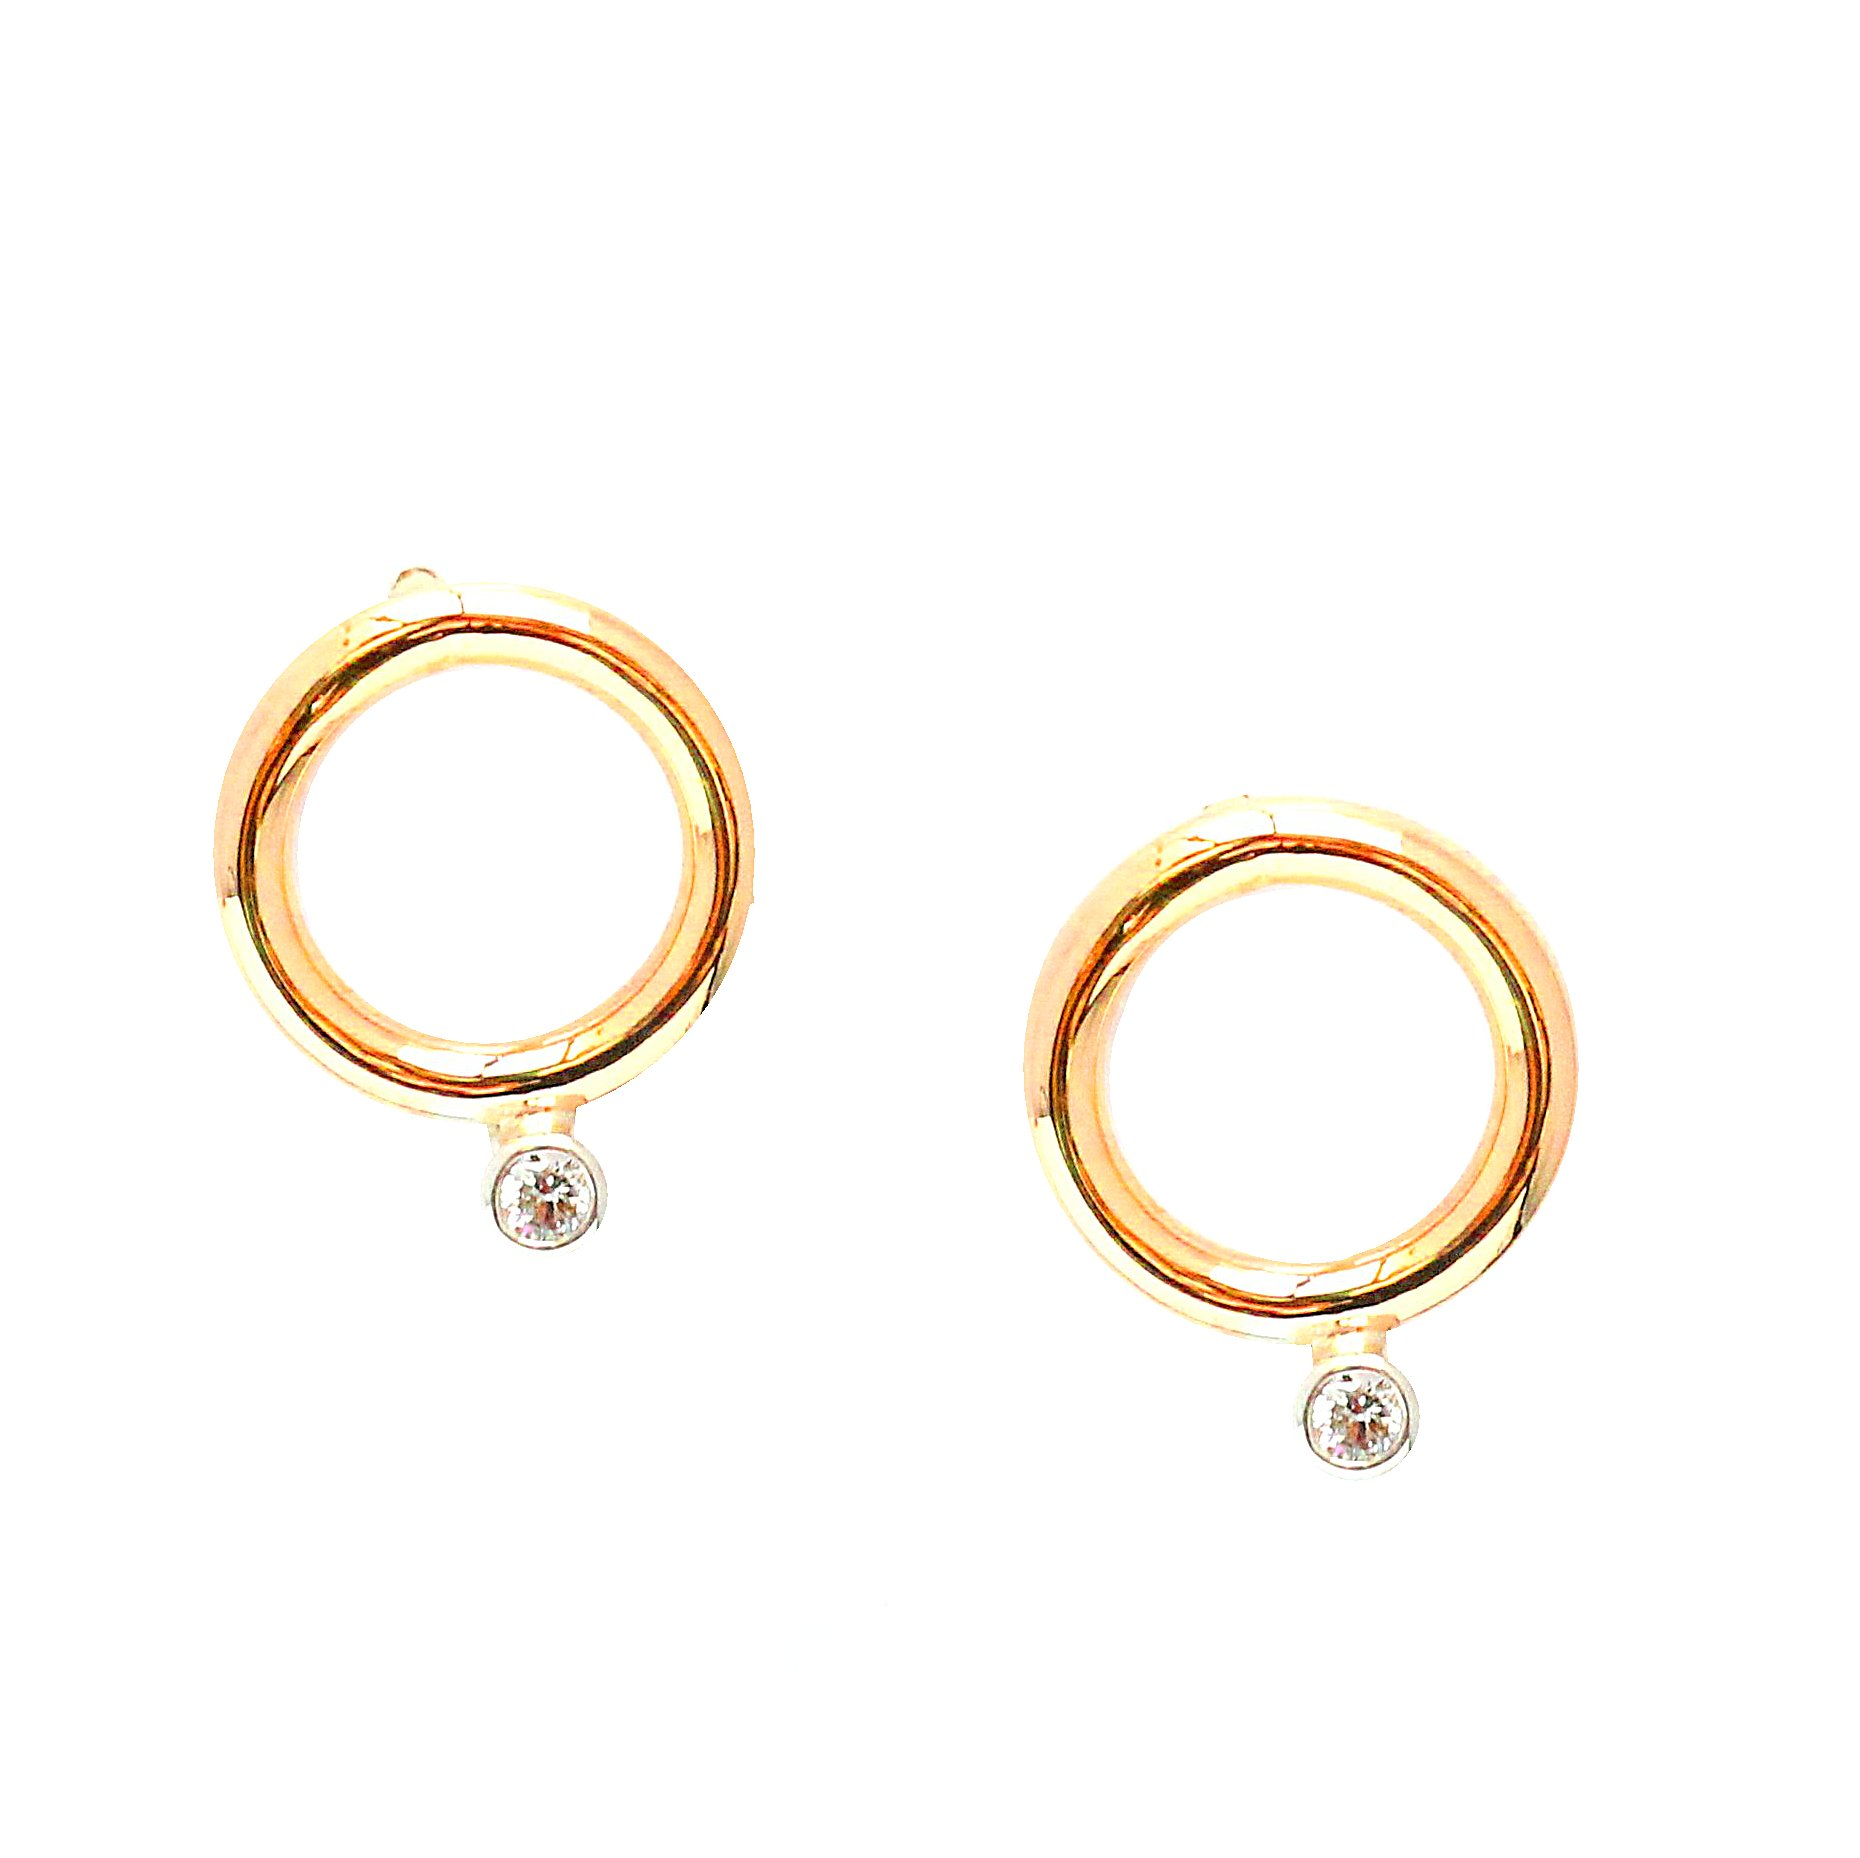 Small 9ct Yellow And White Gold Circle Earrings With Diamond Accent